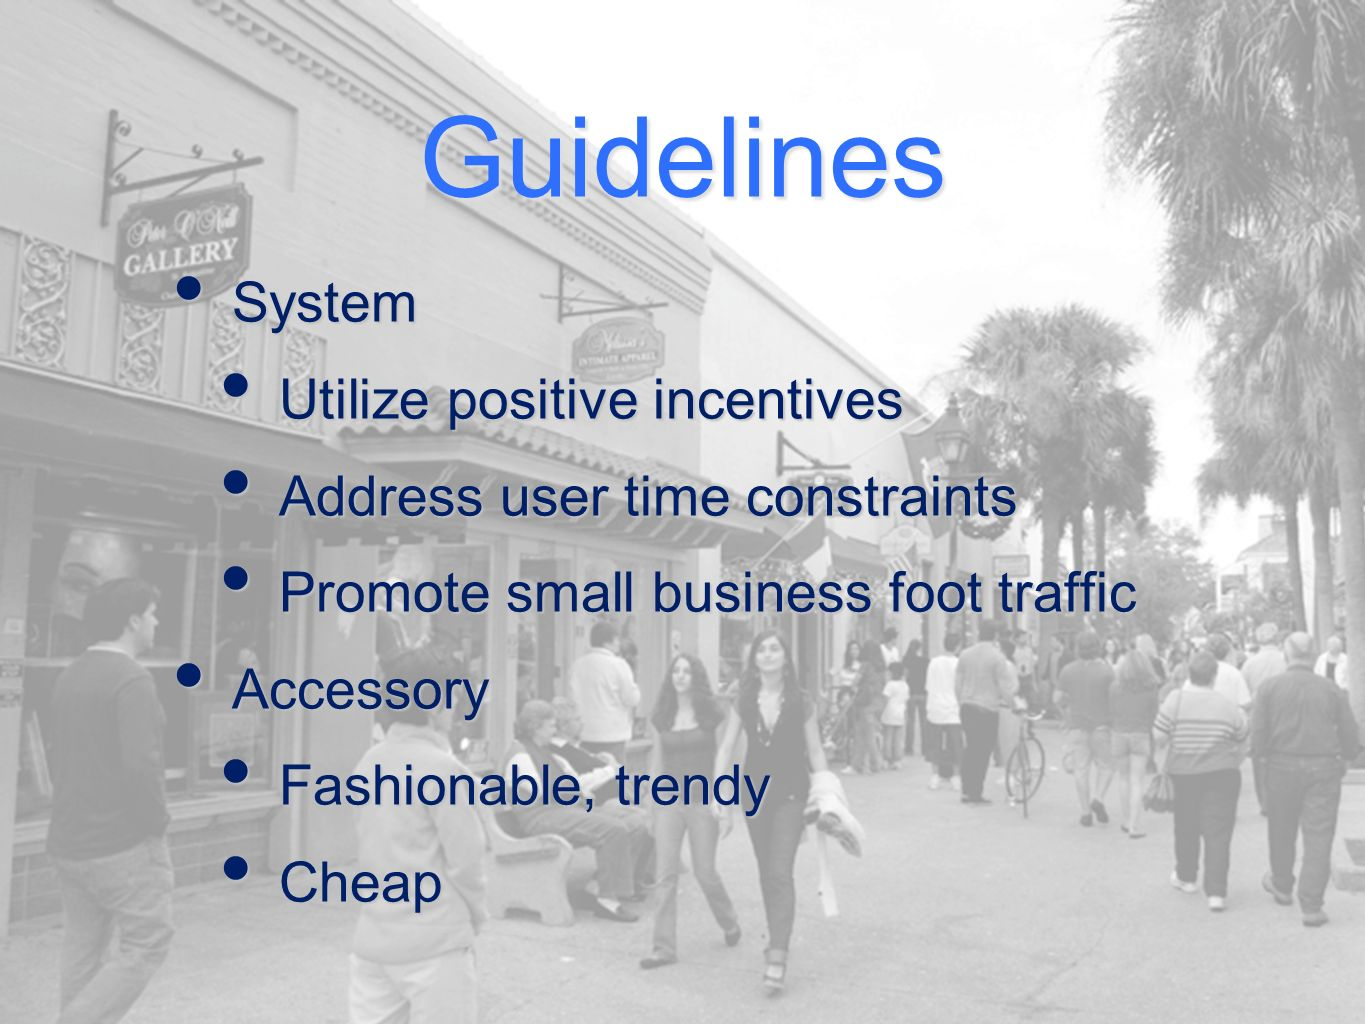 Guidelines System System Utilize positive incentives Utilize positive incentives Address user time constraints Address user time constraints Promote small business foot traffic Promote small business foot traffic Accessory Accessory Fashionable, trendy Fashionable, trendy Cheap Cheap